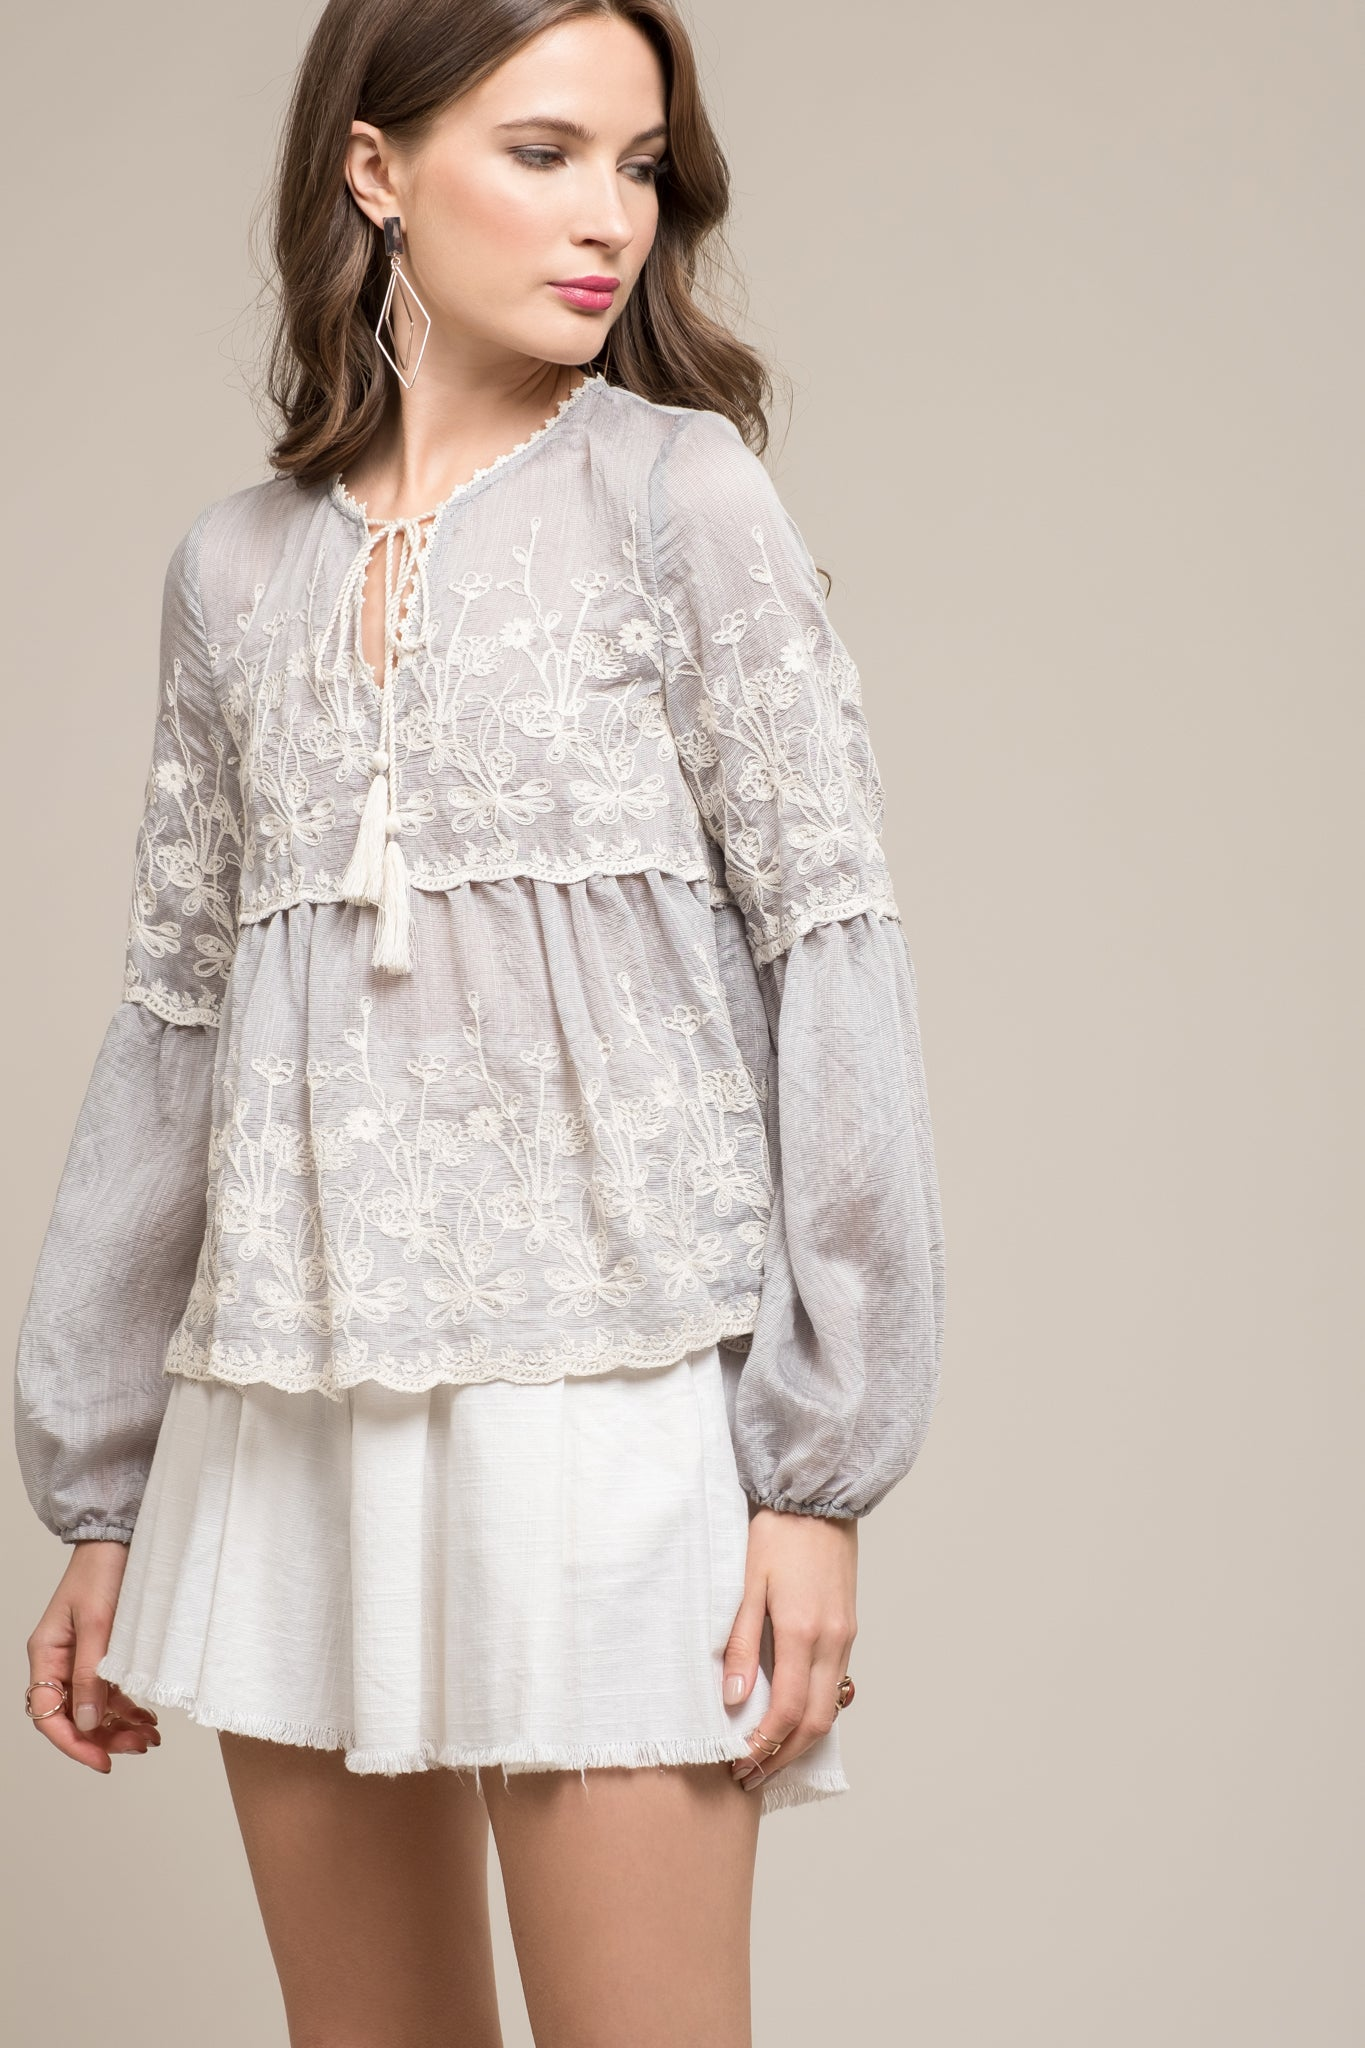 TIERED LONG SLEEVE TOP WITH EMBROIDERY AND SCALLOP HEM